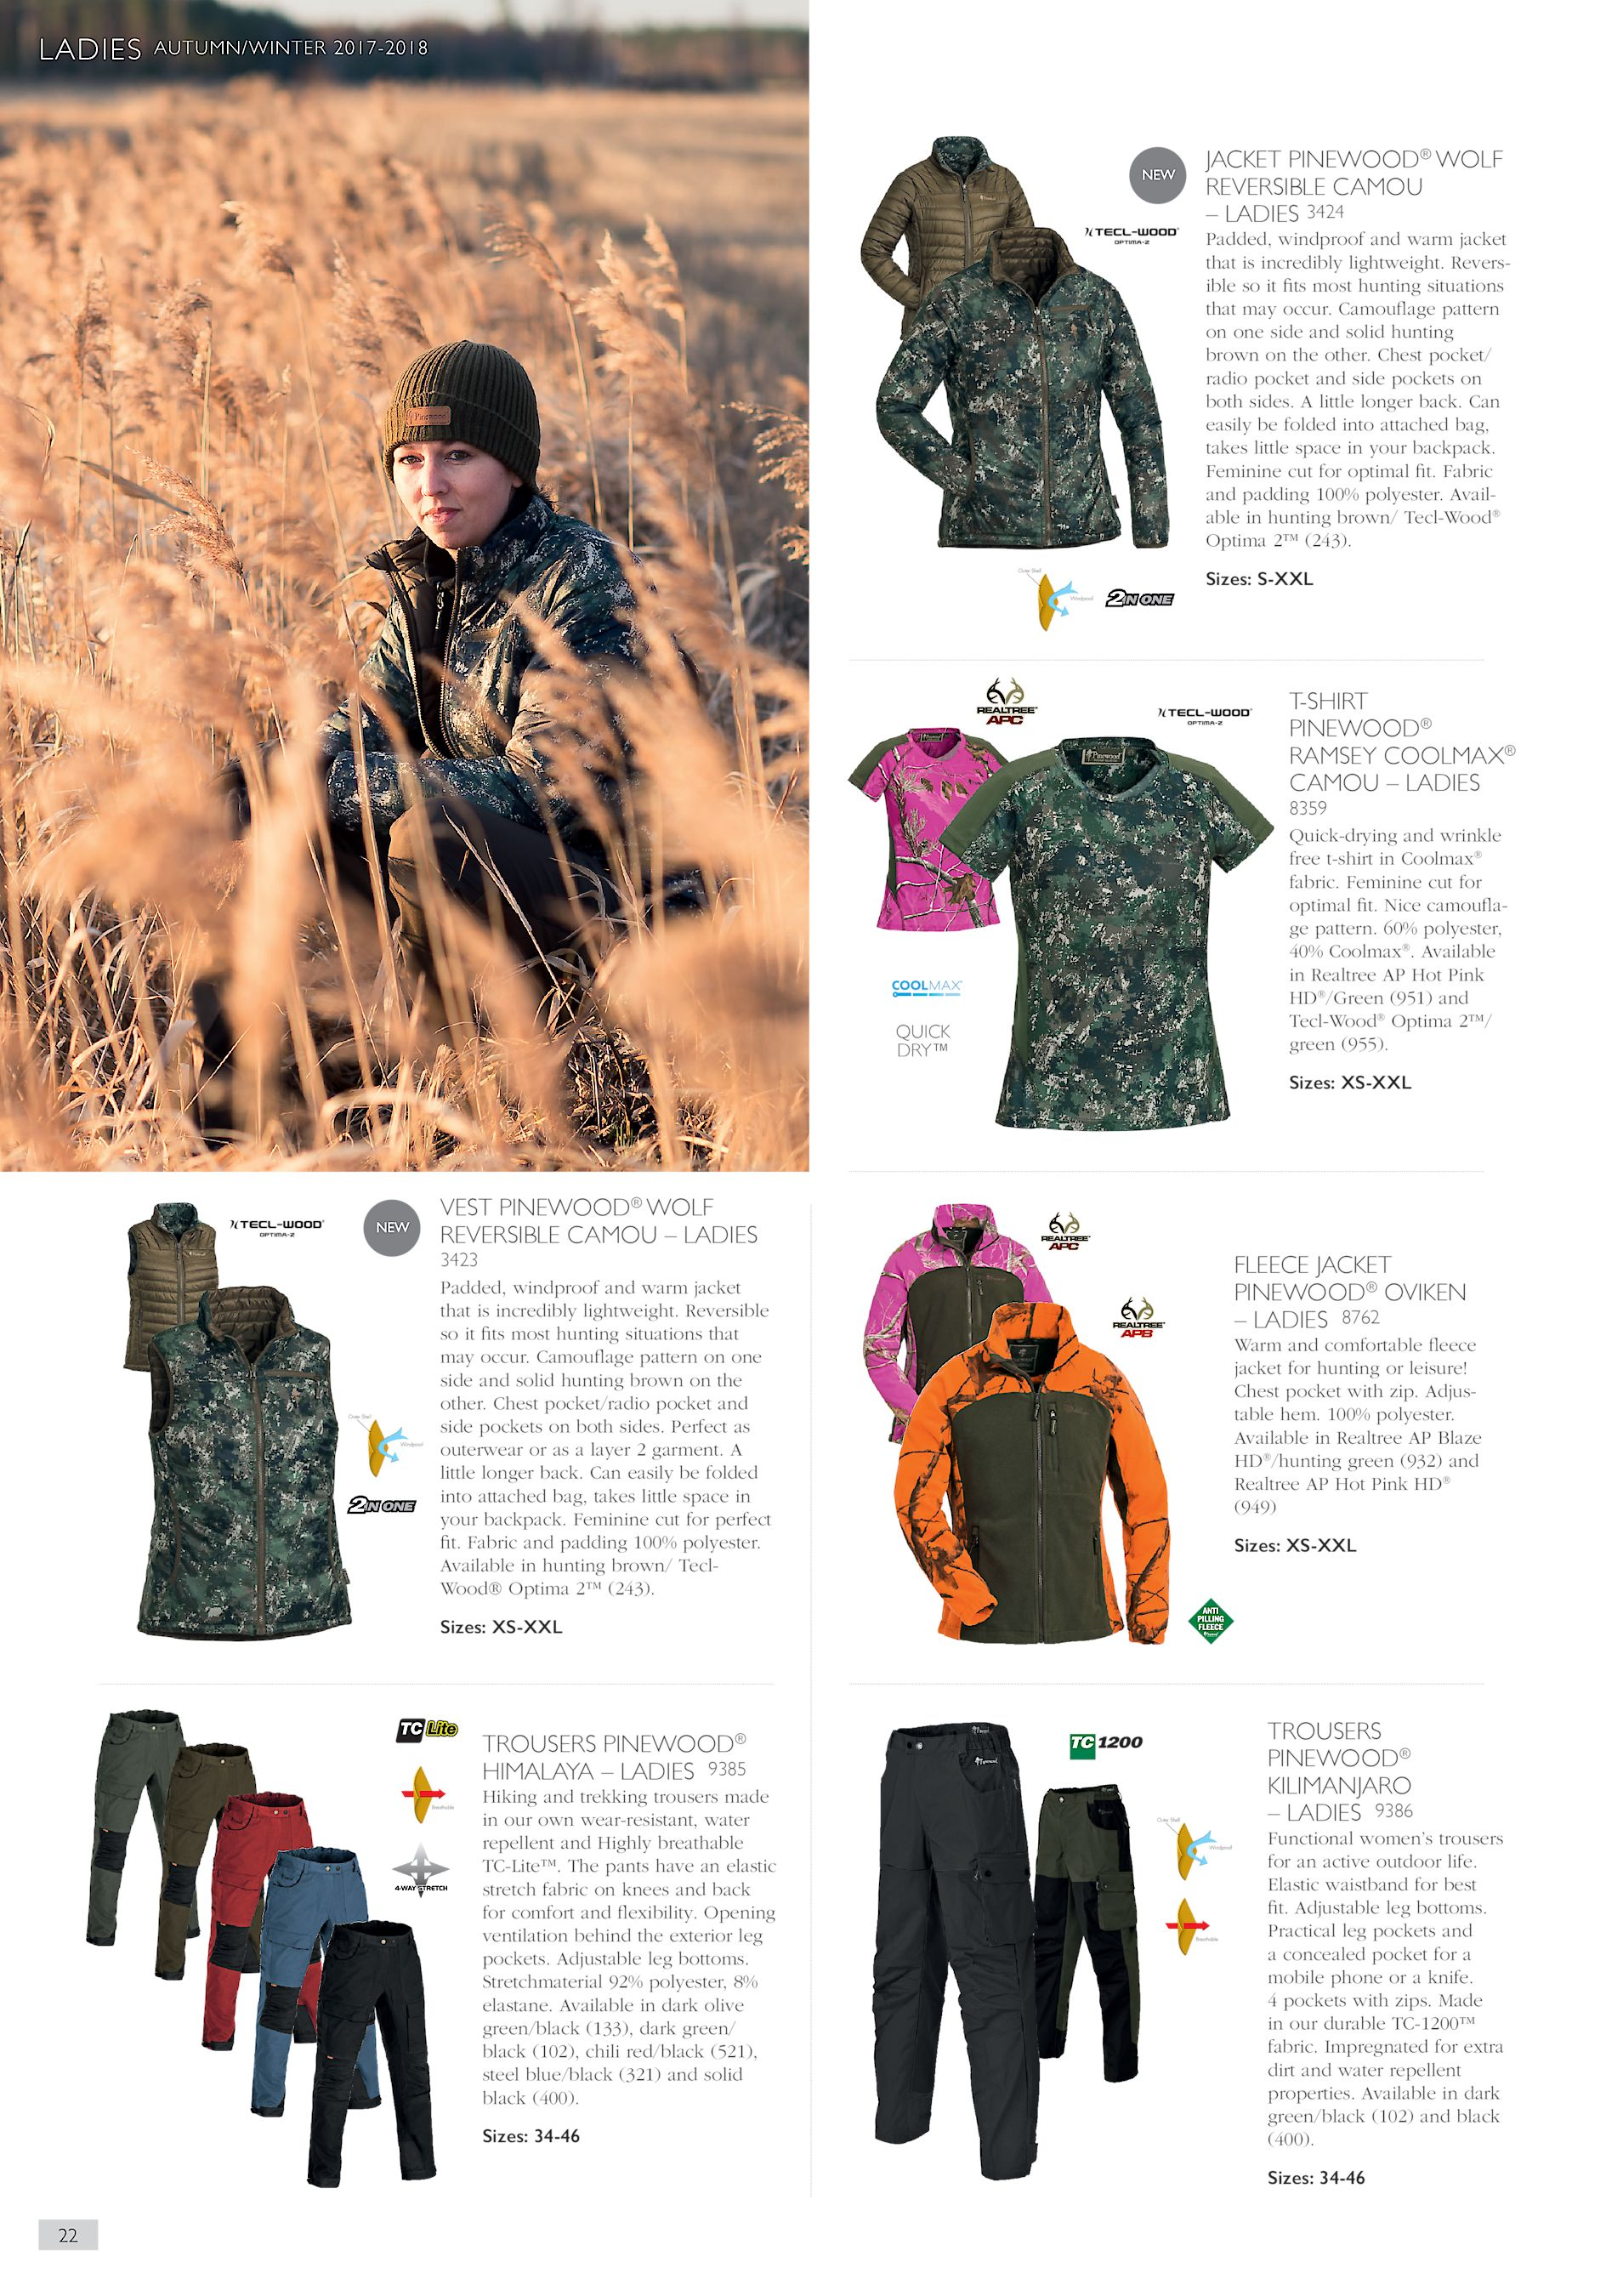 20eb3e62fb091 LADIES AUTUMN/WINTER 2017-2018 JACKET PINEWOOD® WOLF REVERSIBLE CAMOU –  LADIES 3424 Padded, windproof and warm jacket that is incredibly  lightweight.